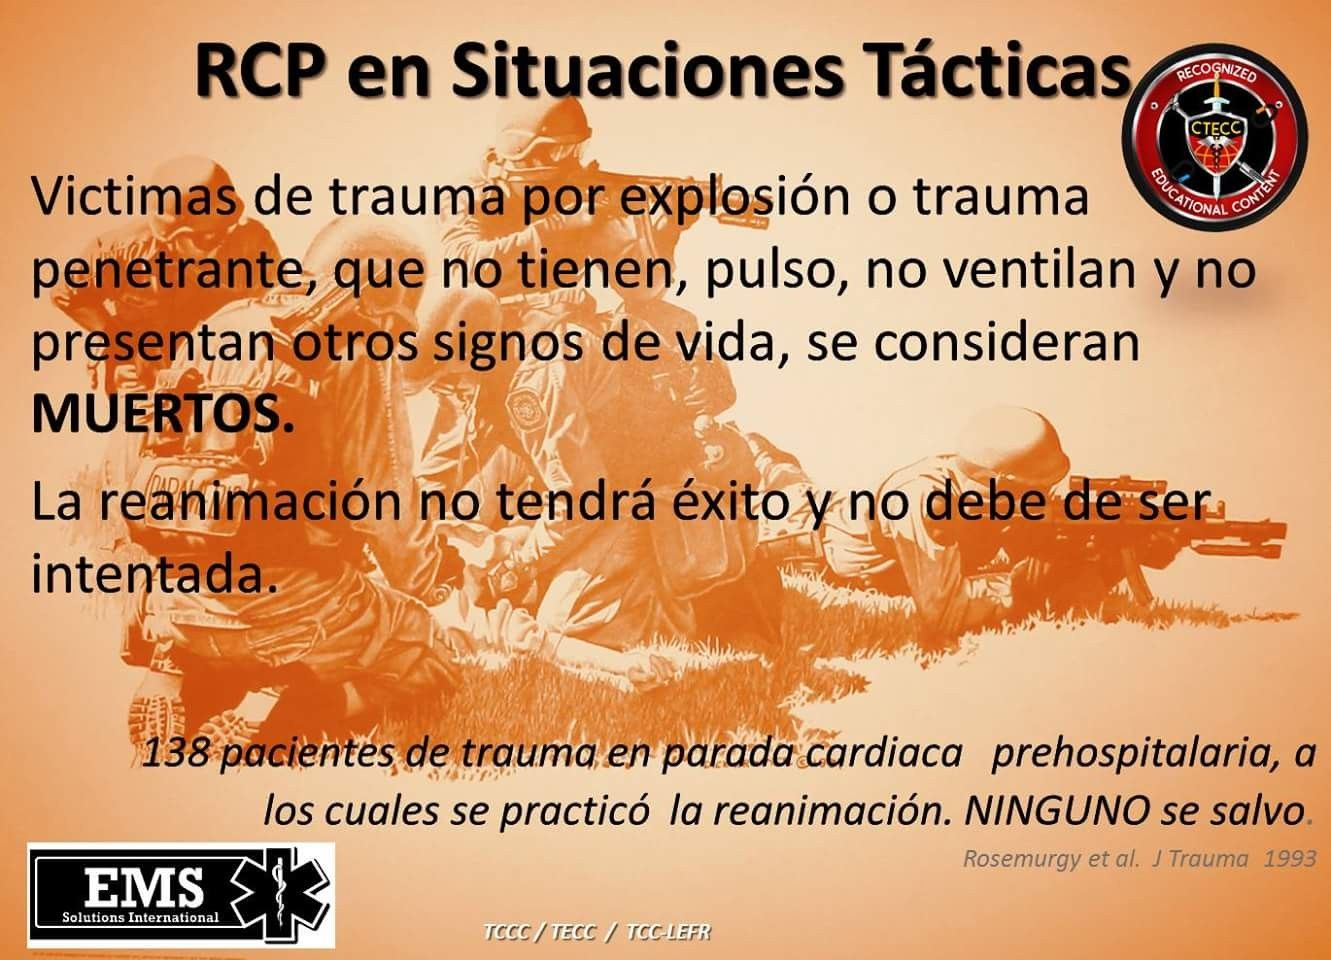 Pin by Subitus International on Tactical Combat Casualty Care TCCC